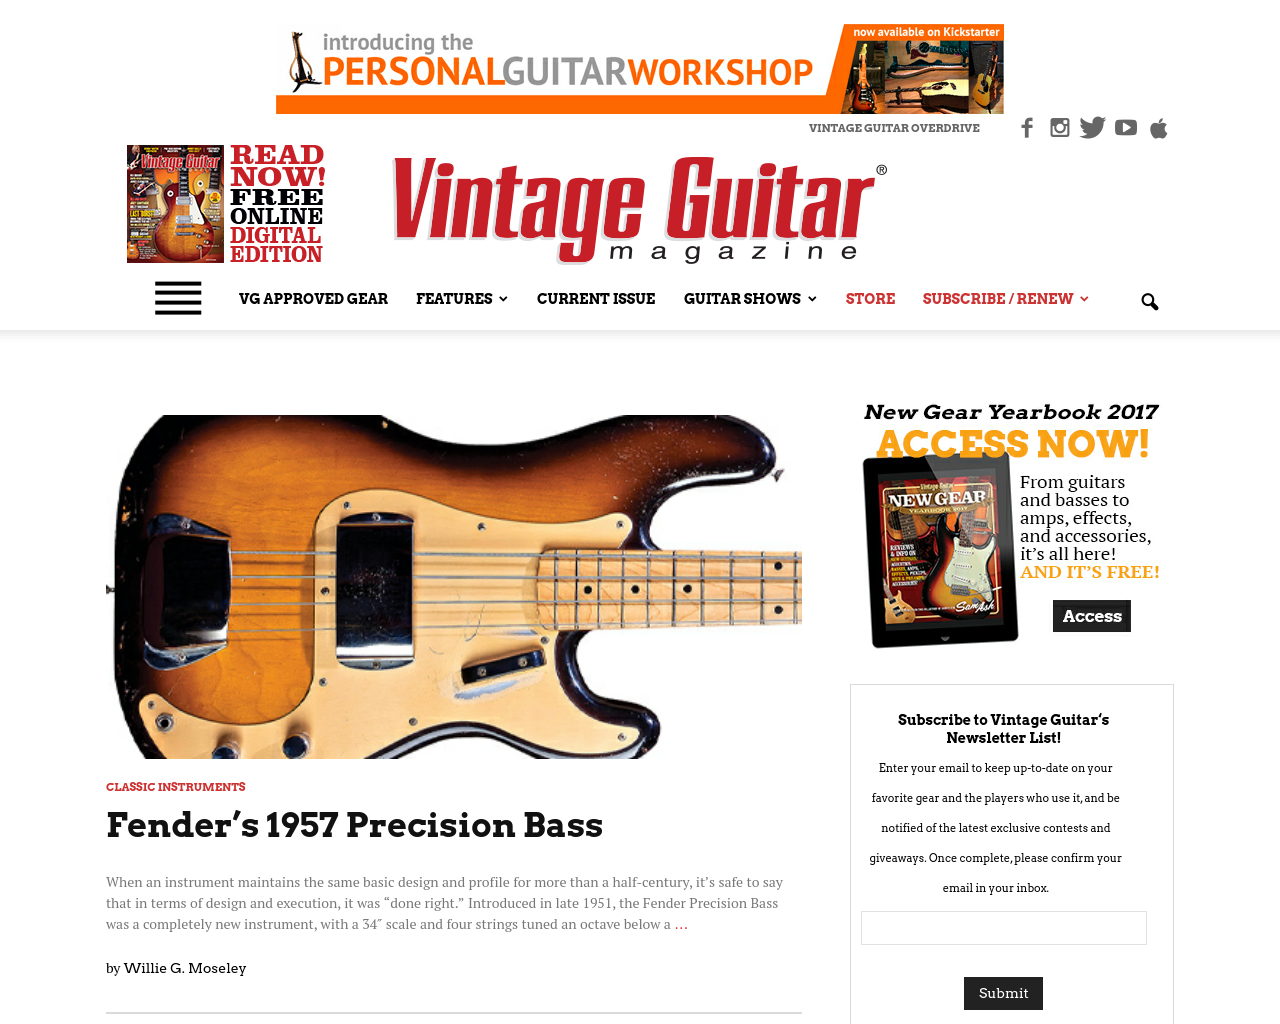 Vintage-Guitar-Advertising-Reviews-Pricing